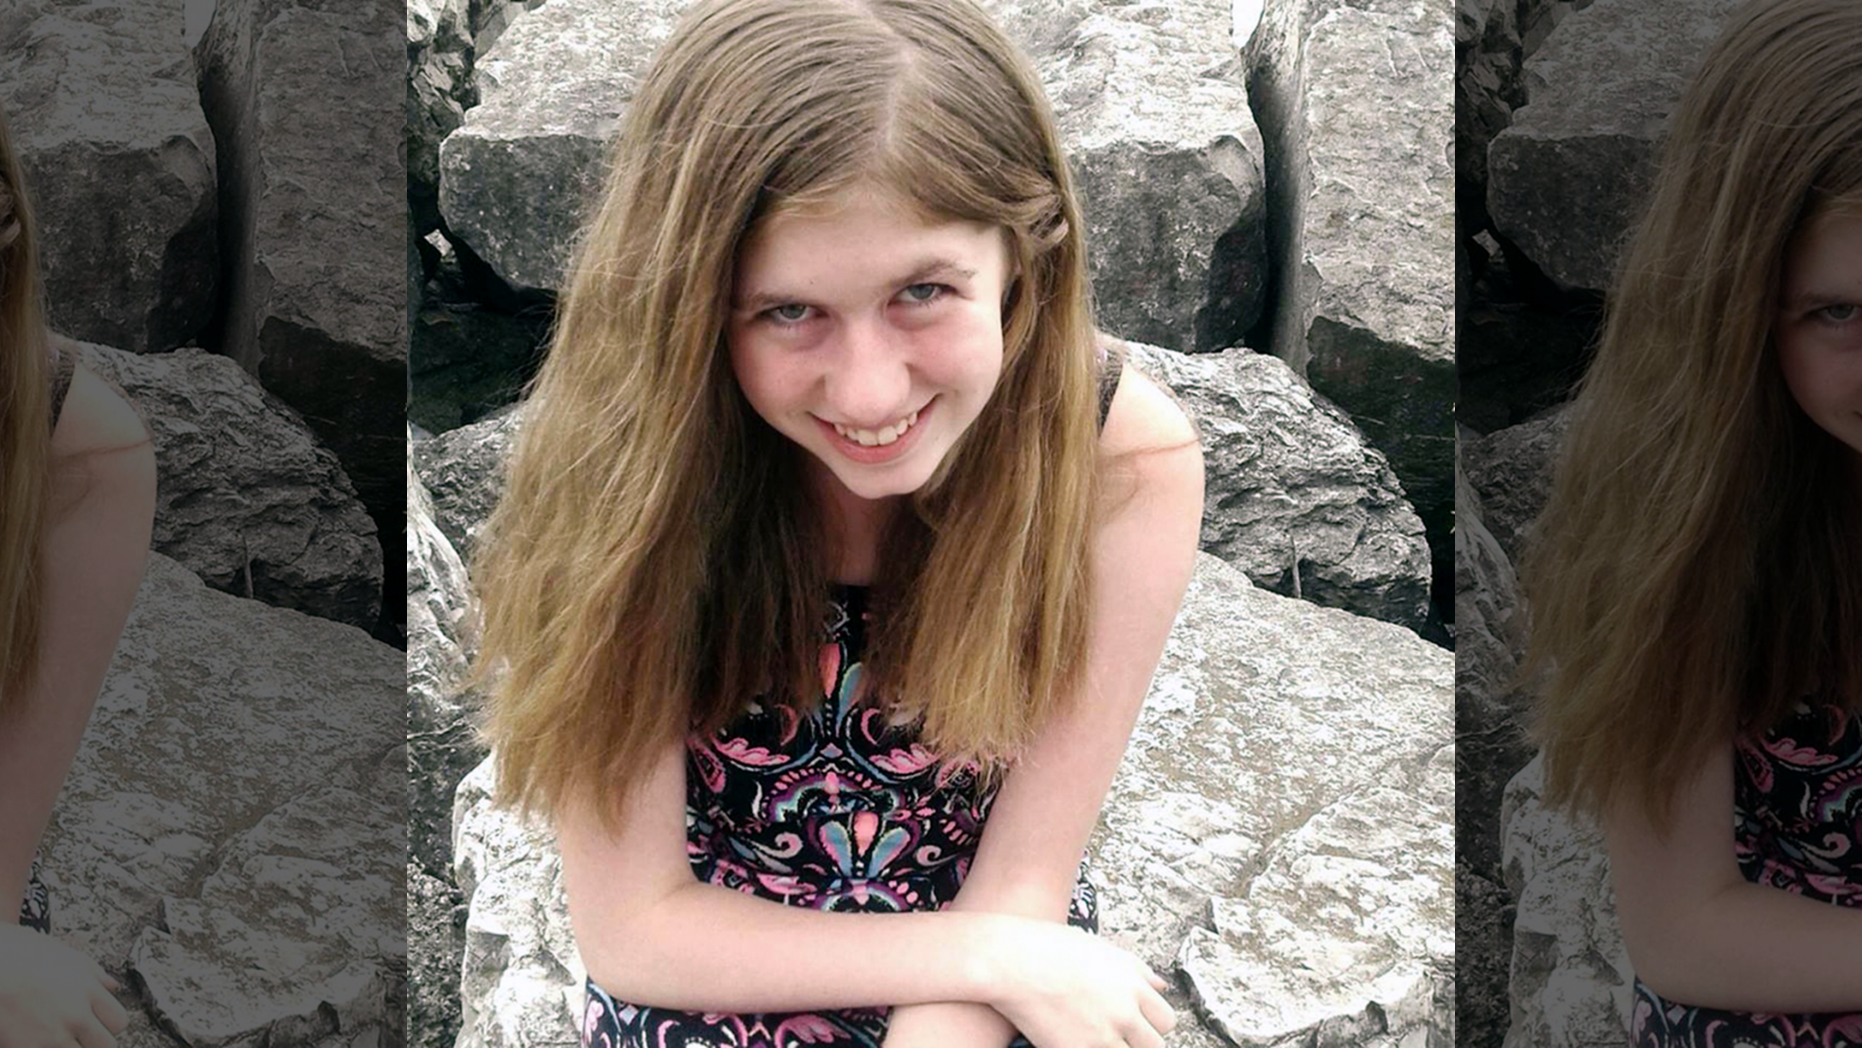 This undated file photo provided by Barron County, Wis., Sheriff's Department, shows Jayme Closs, who was discovered missing Oct. (Courtesy of Barron County Sheriff's Department via AP, File)